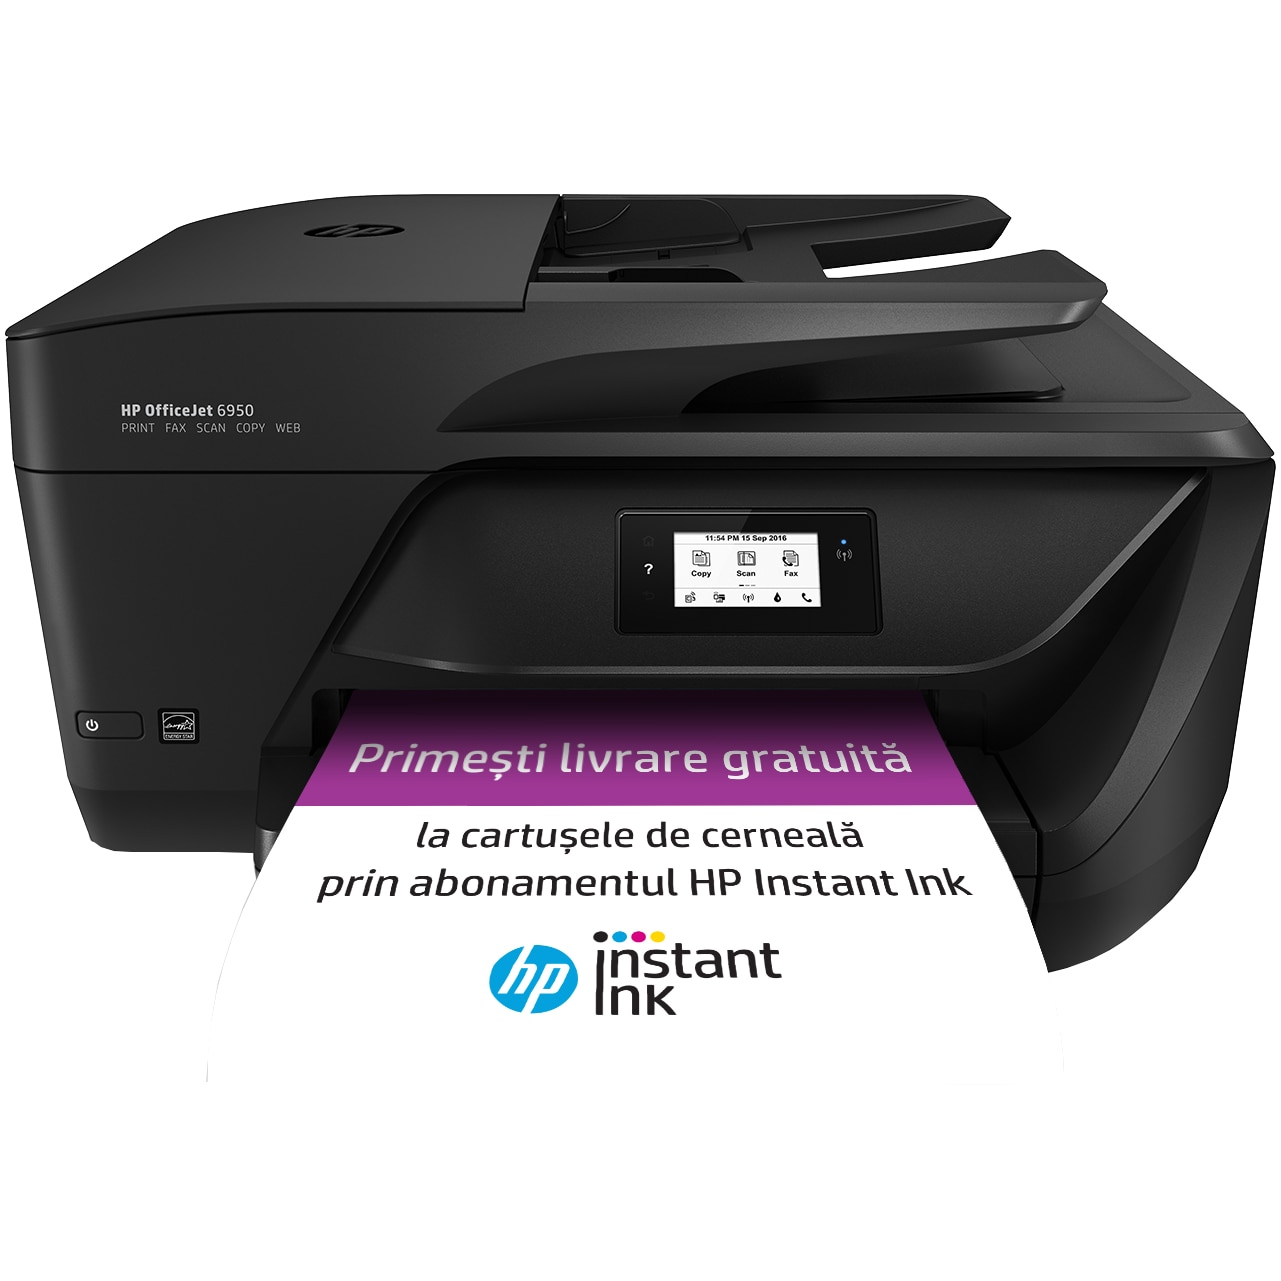 Fotografie Multifunctional HP OfficeJet 6950 All-in-One, eligibil HP Instant Ink, A4, Wireless, Fax, ADF